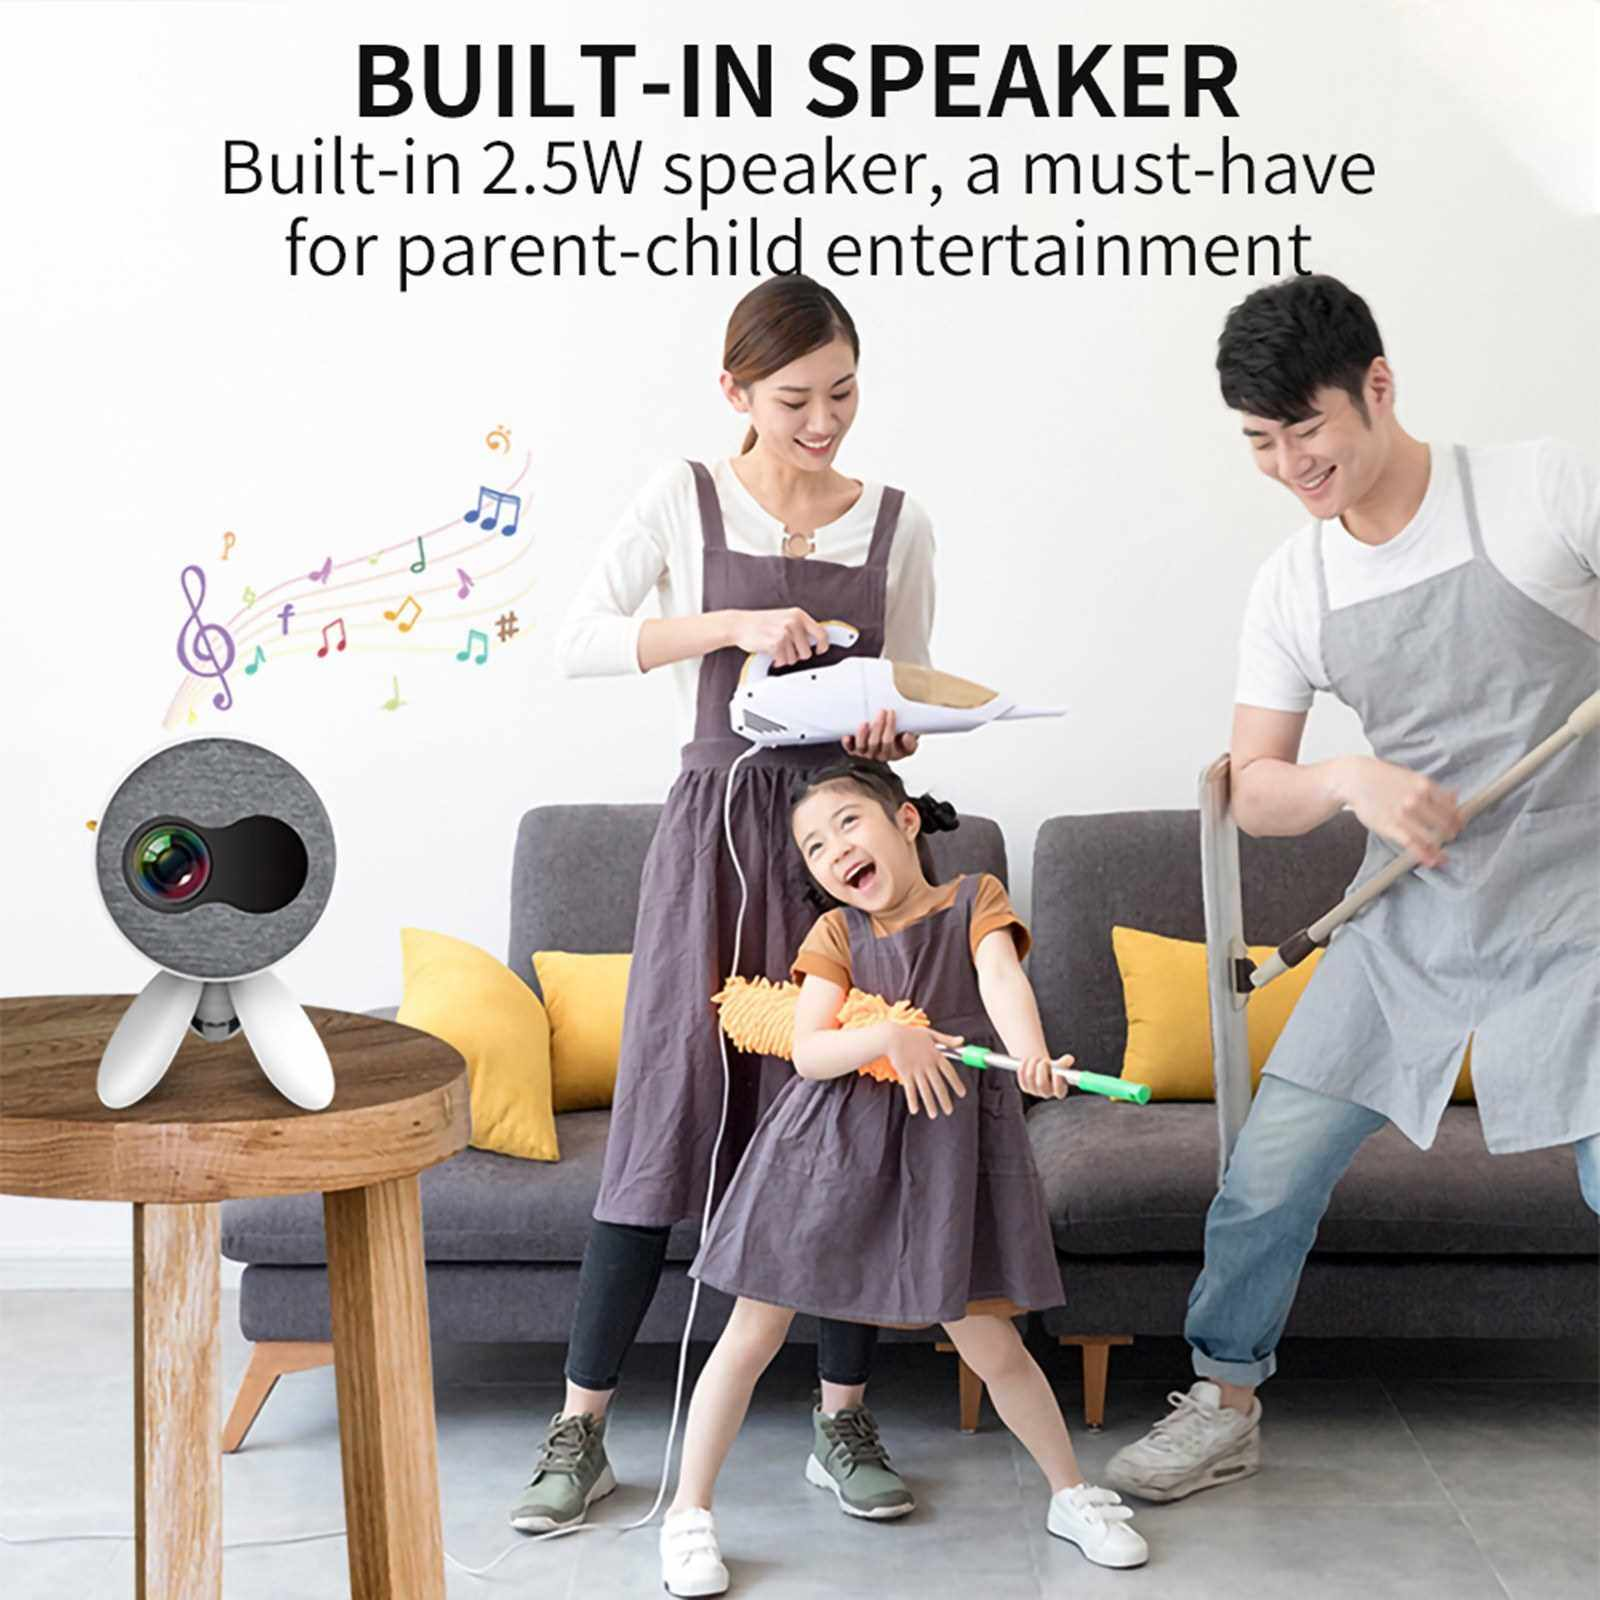 YG220 LED Mini Projector 480*272 Pixels Portable Projector Support 4K 1080P Full HD Android Beamer TV USB AV TF Card Audio Home Media Video Player (Yellow)